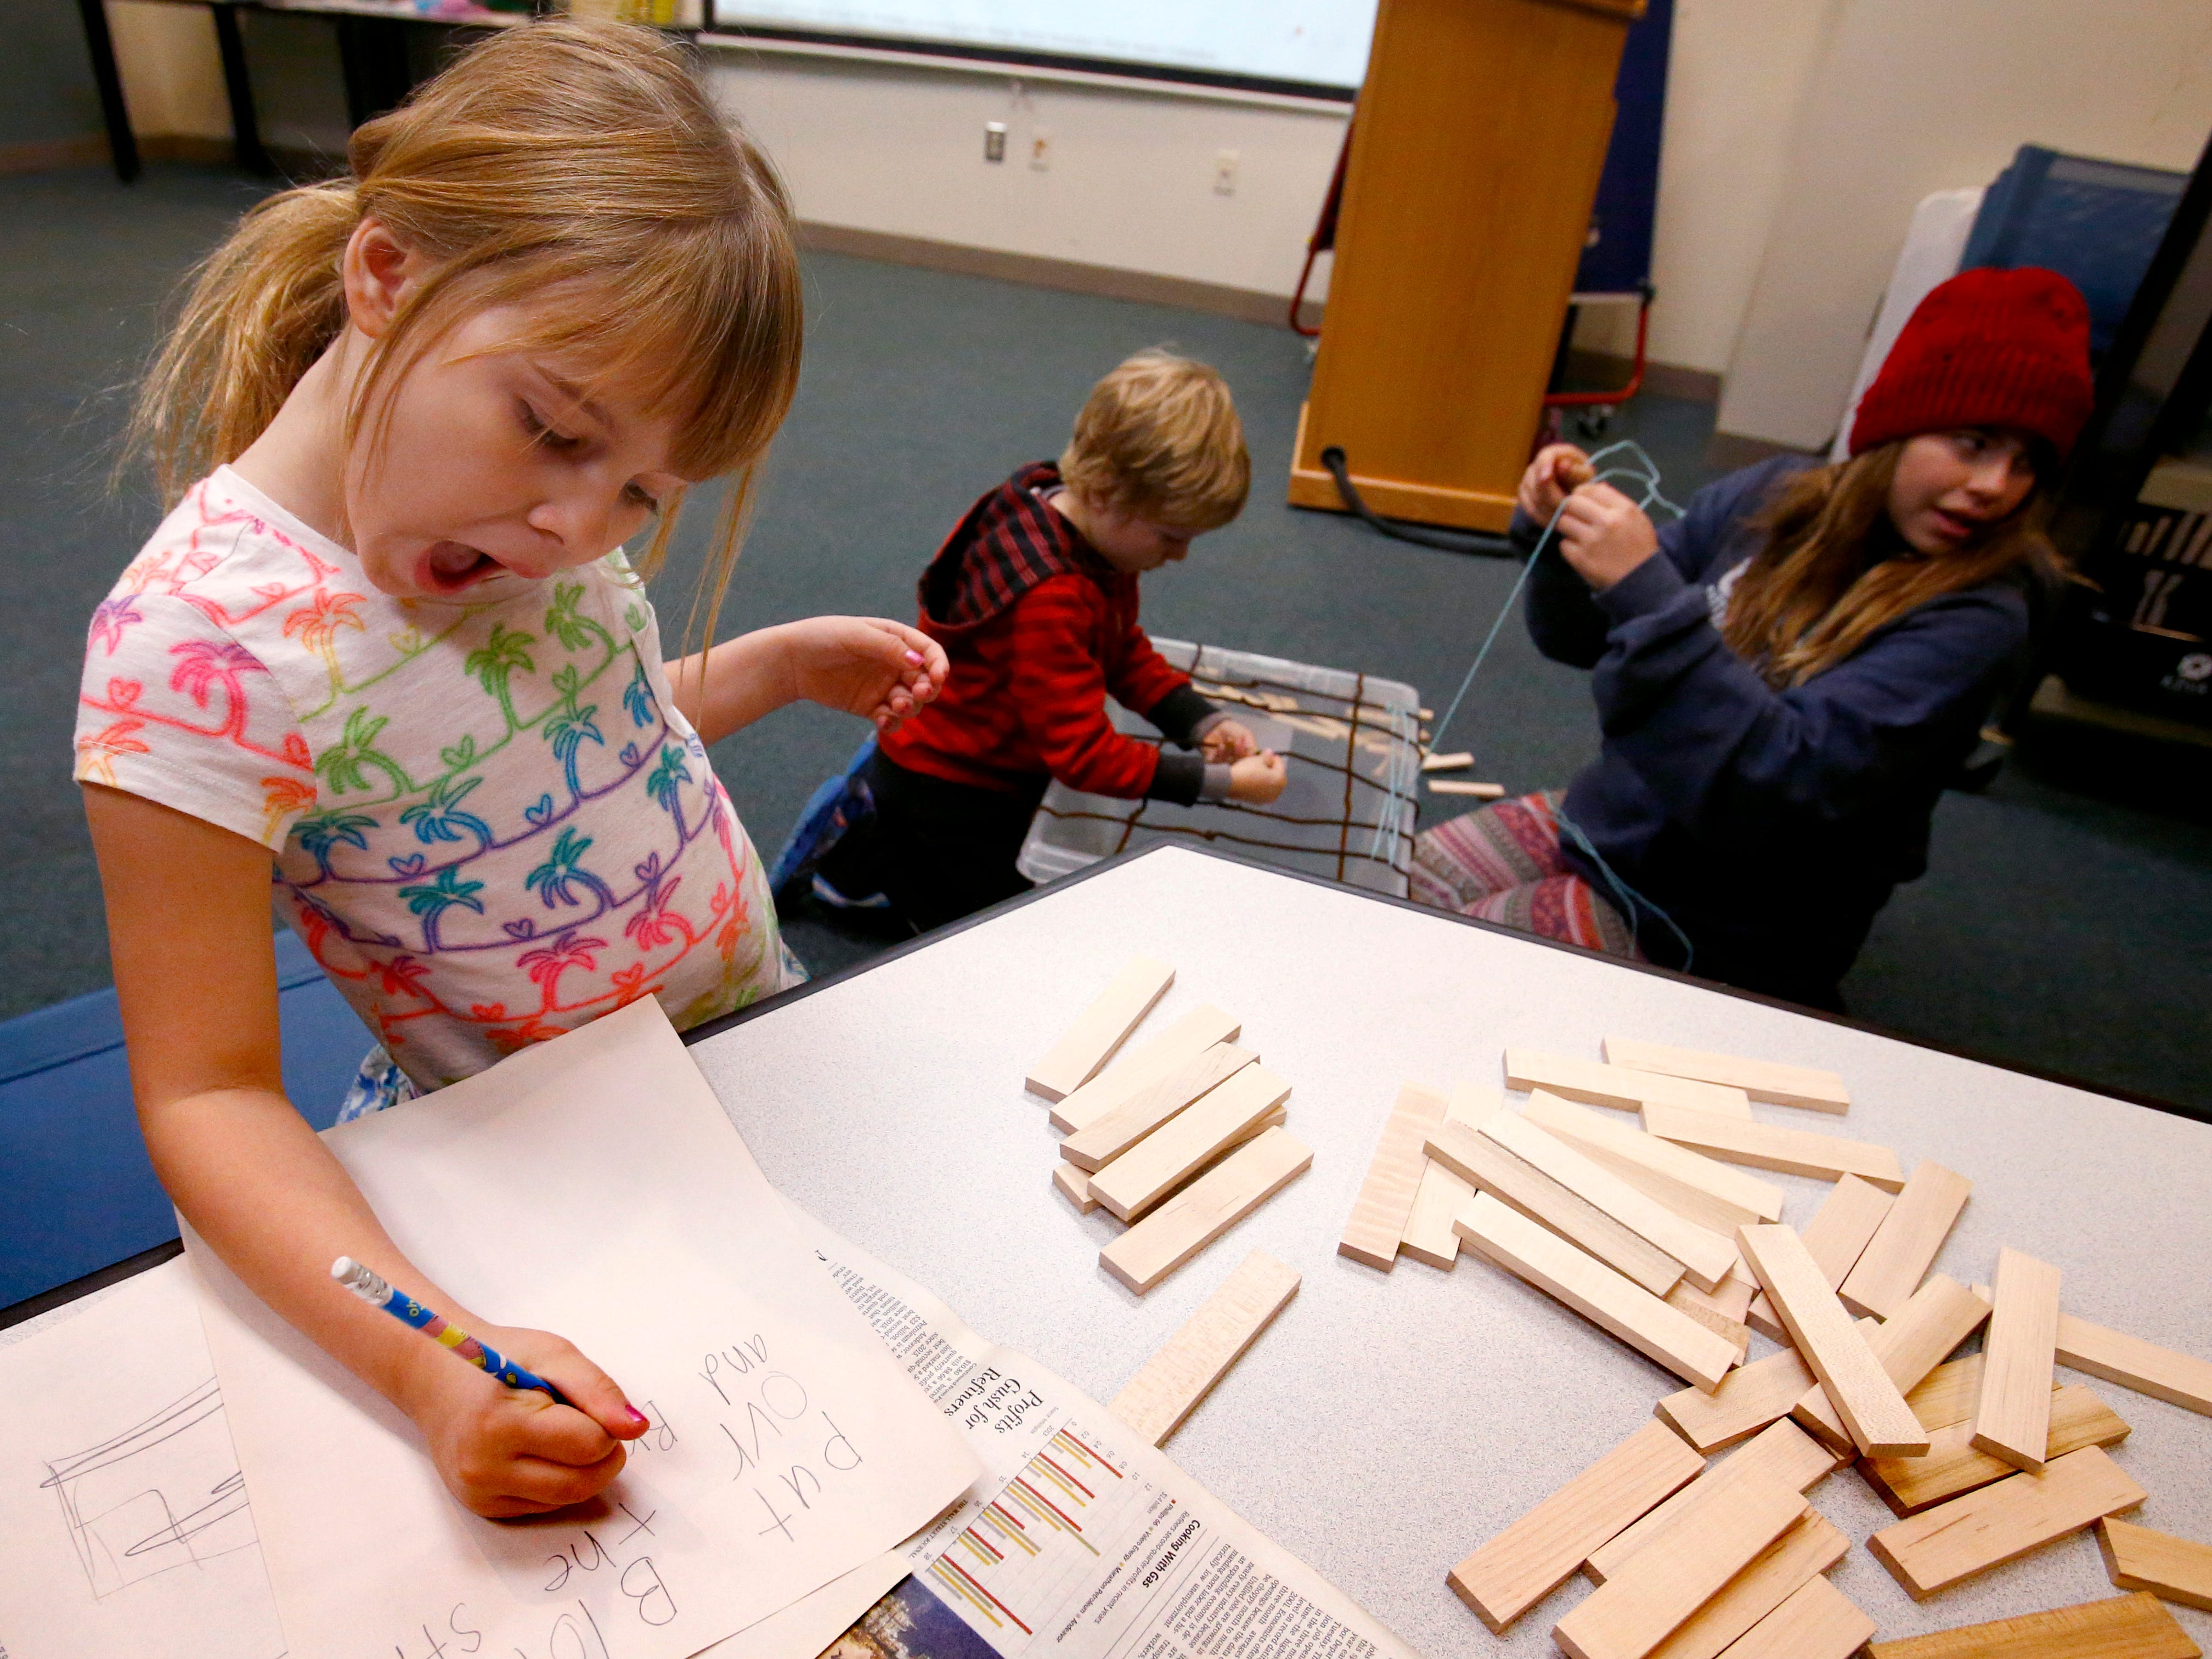 Campbell Young works on a design for a bridge that she and siblings Rhett and Adeline would build using newspaper, yard and pipe cleaners to span a tub during a STEAM - science, technology, engineering, art and math - program at the Menomonee Falls Library on Nov. 14.